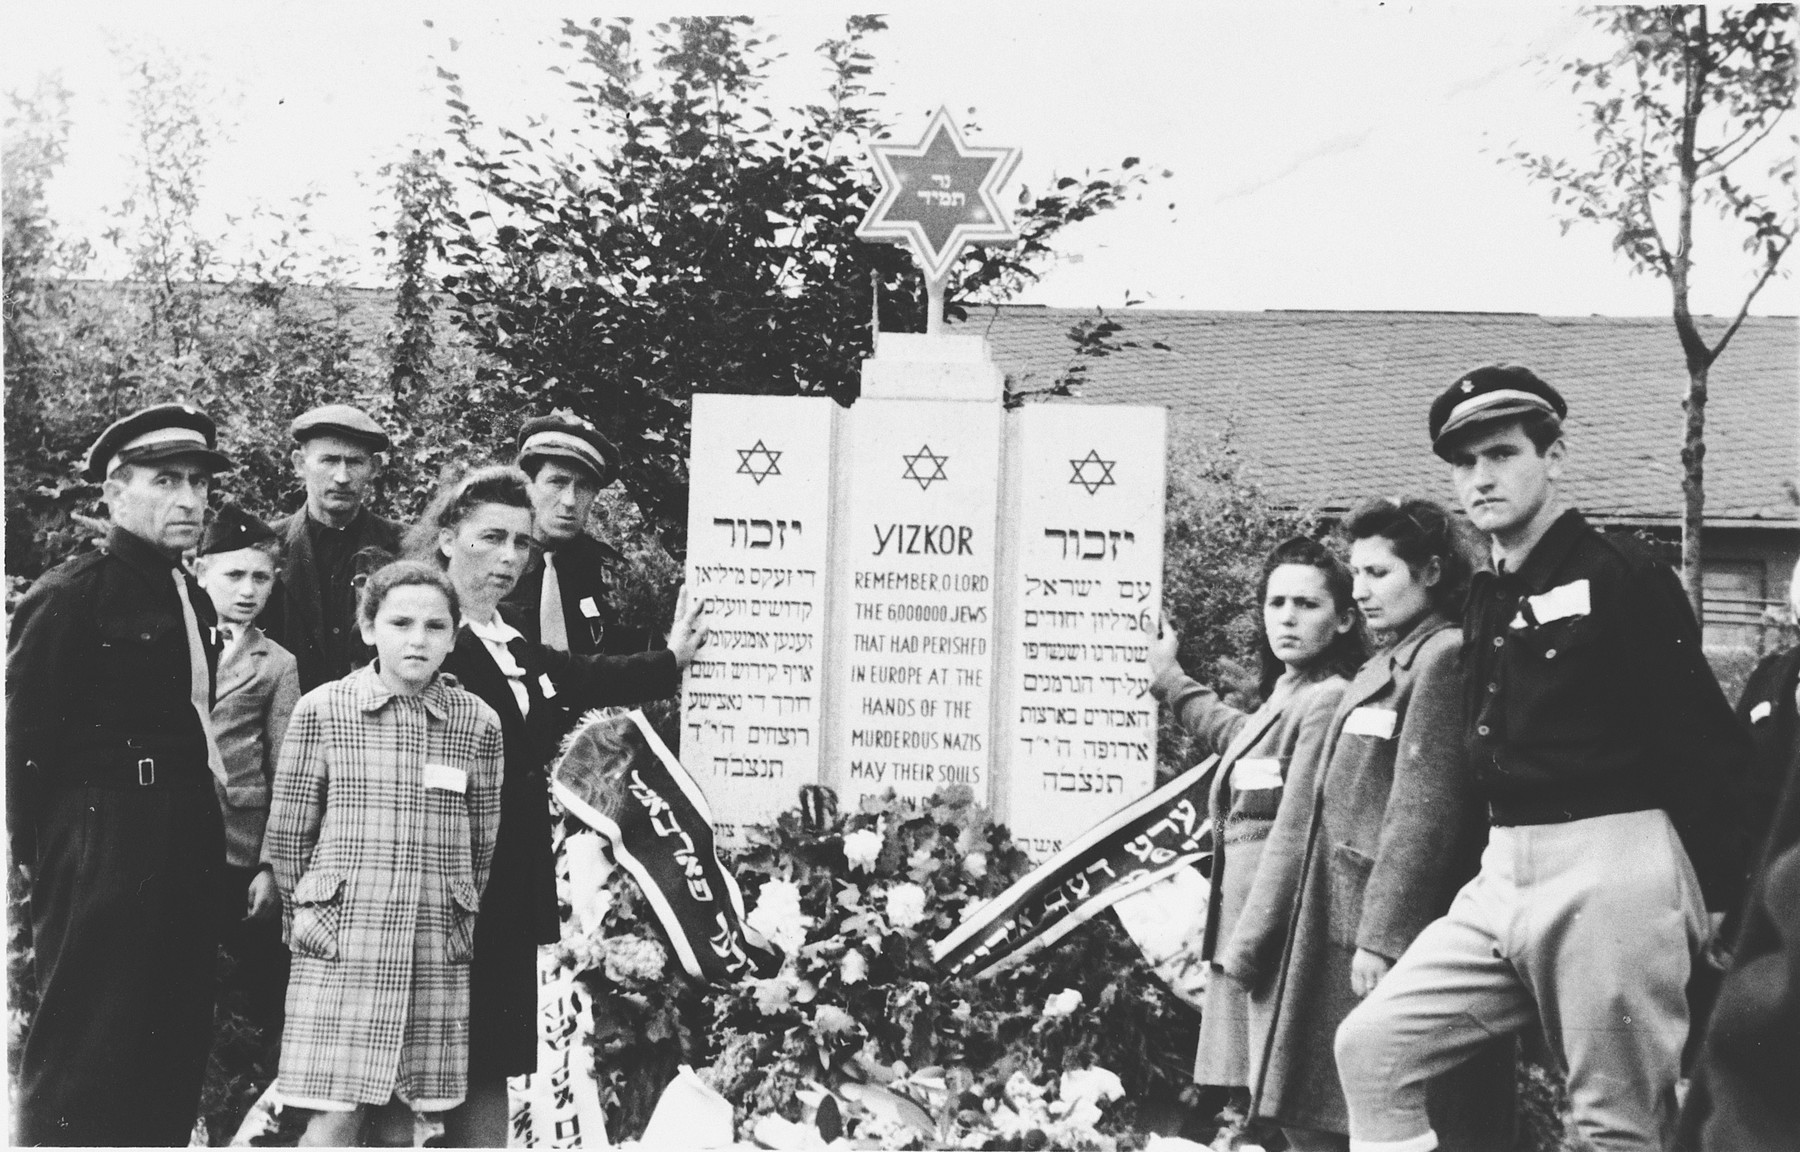 Survivors attend a memorial ceremony in the Hasenecke displaced persons camp.  Pictured on the left is Renia Pilzer and her aunt, Nette Goldman.